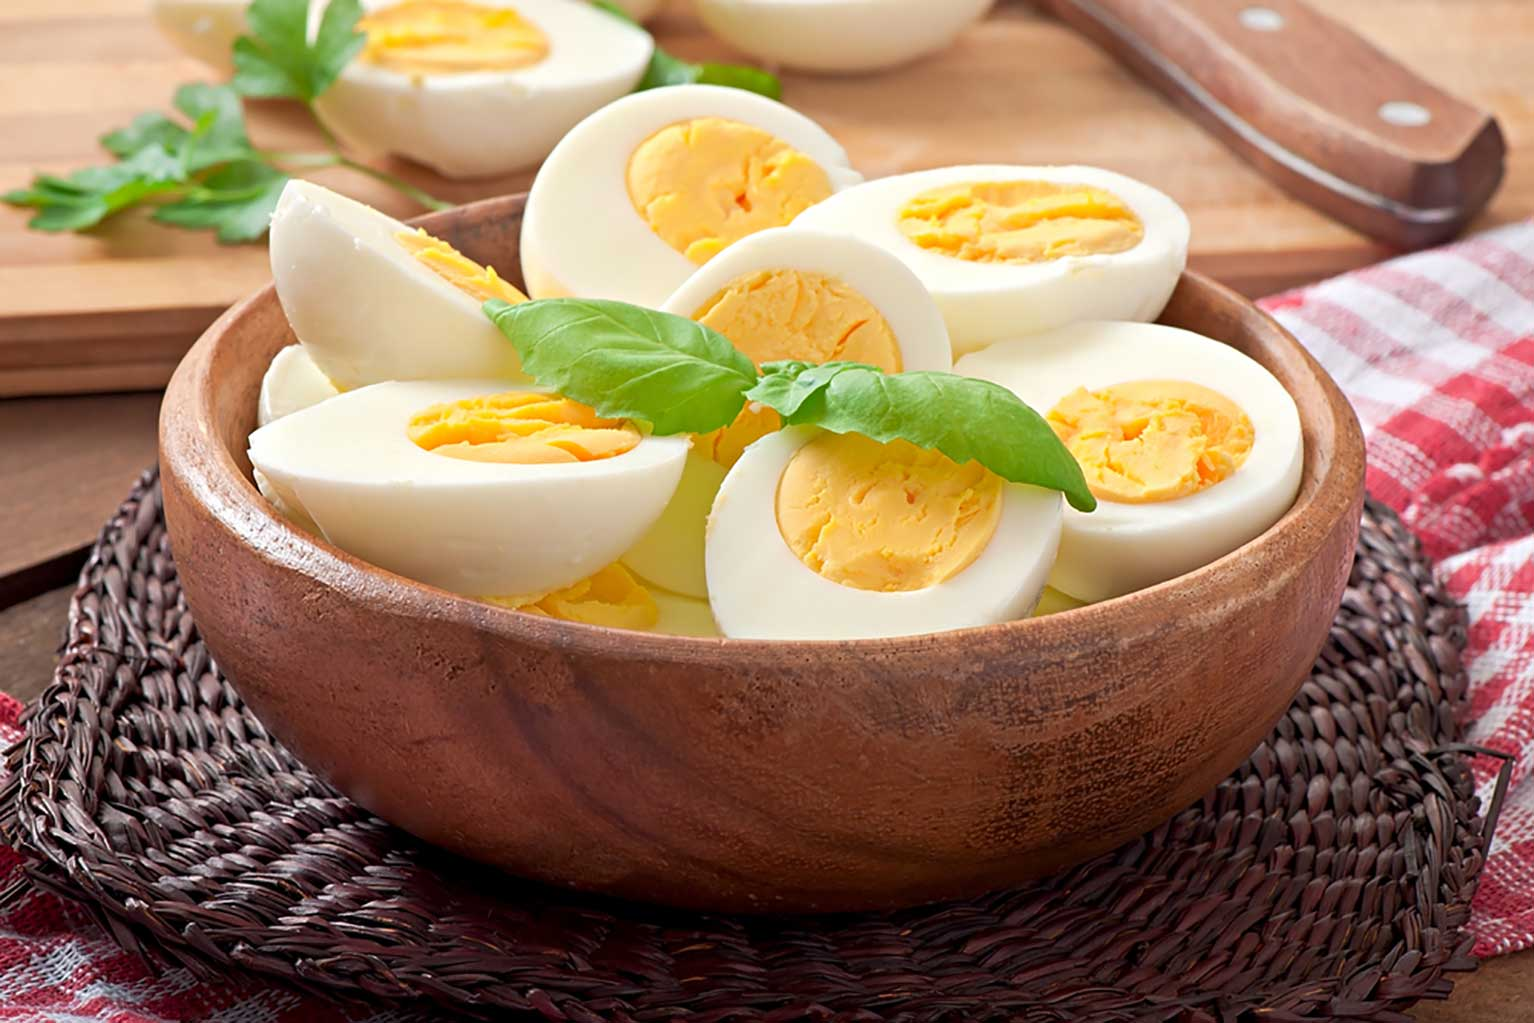 wooden bowl full of hard-boiled eggs with garnish